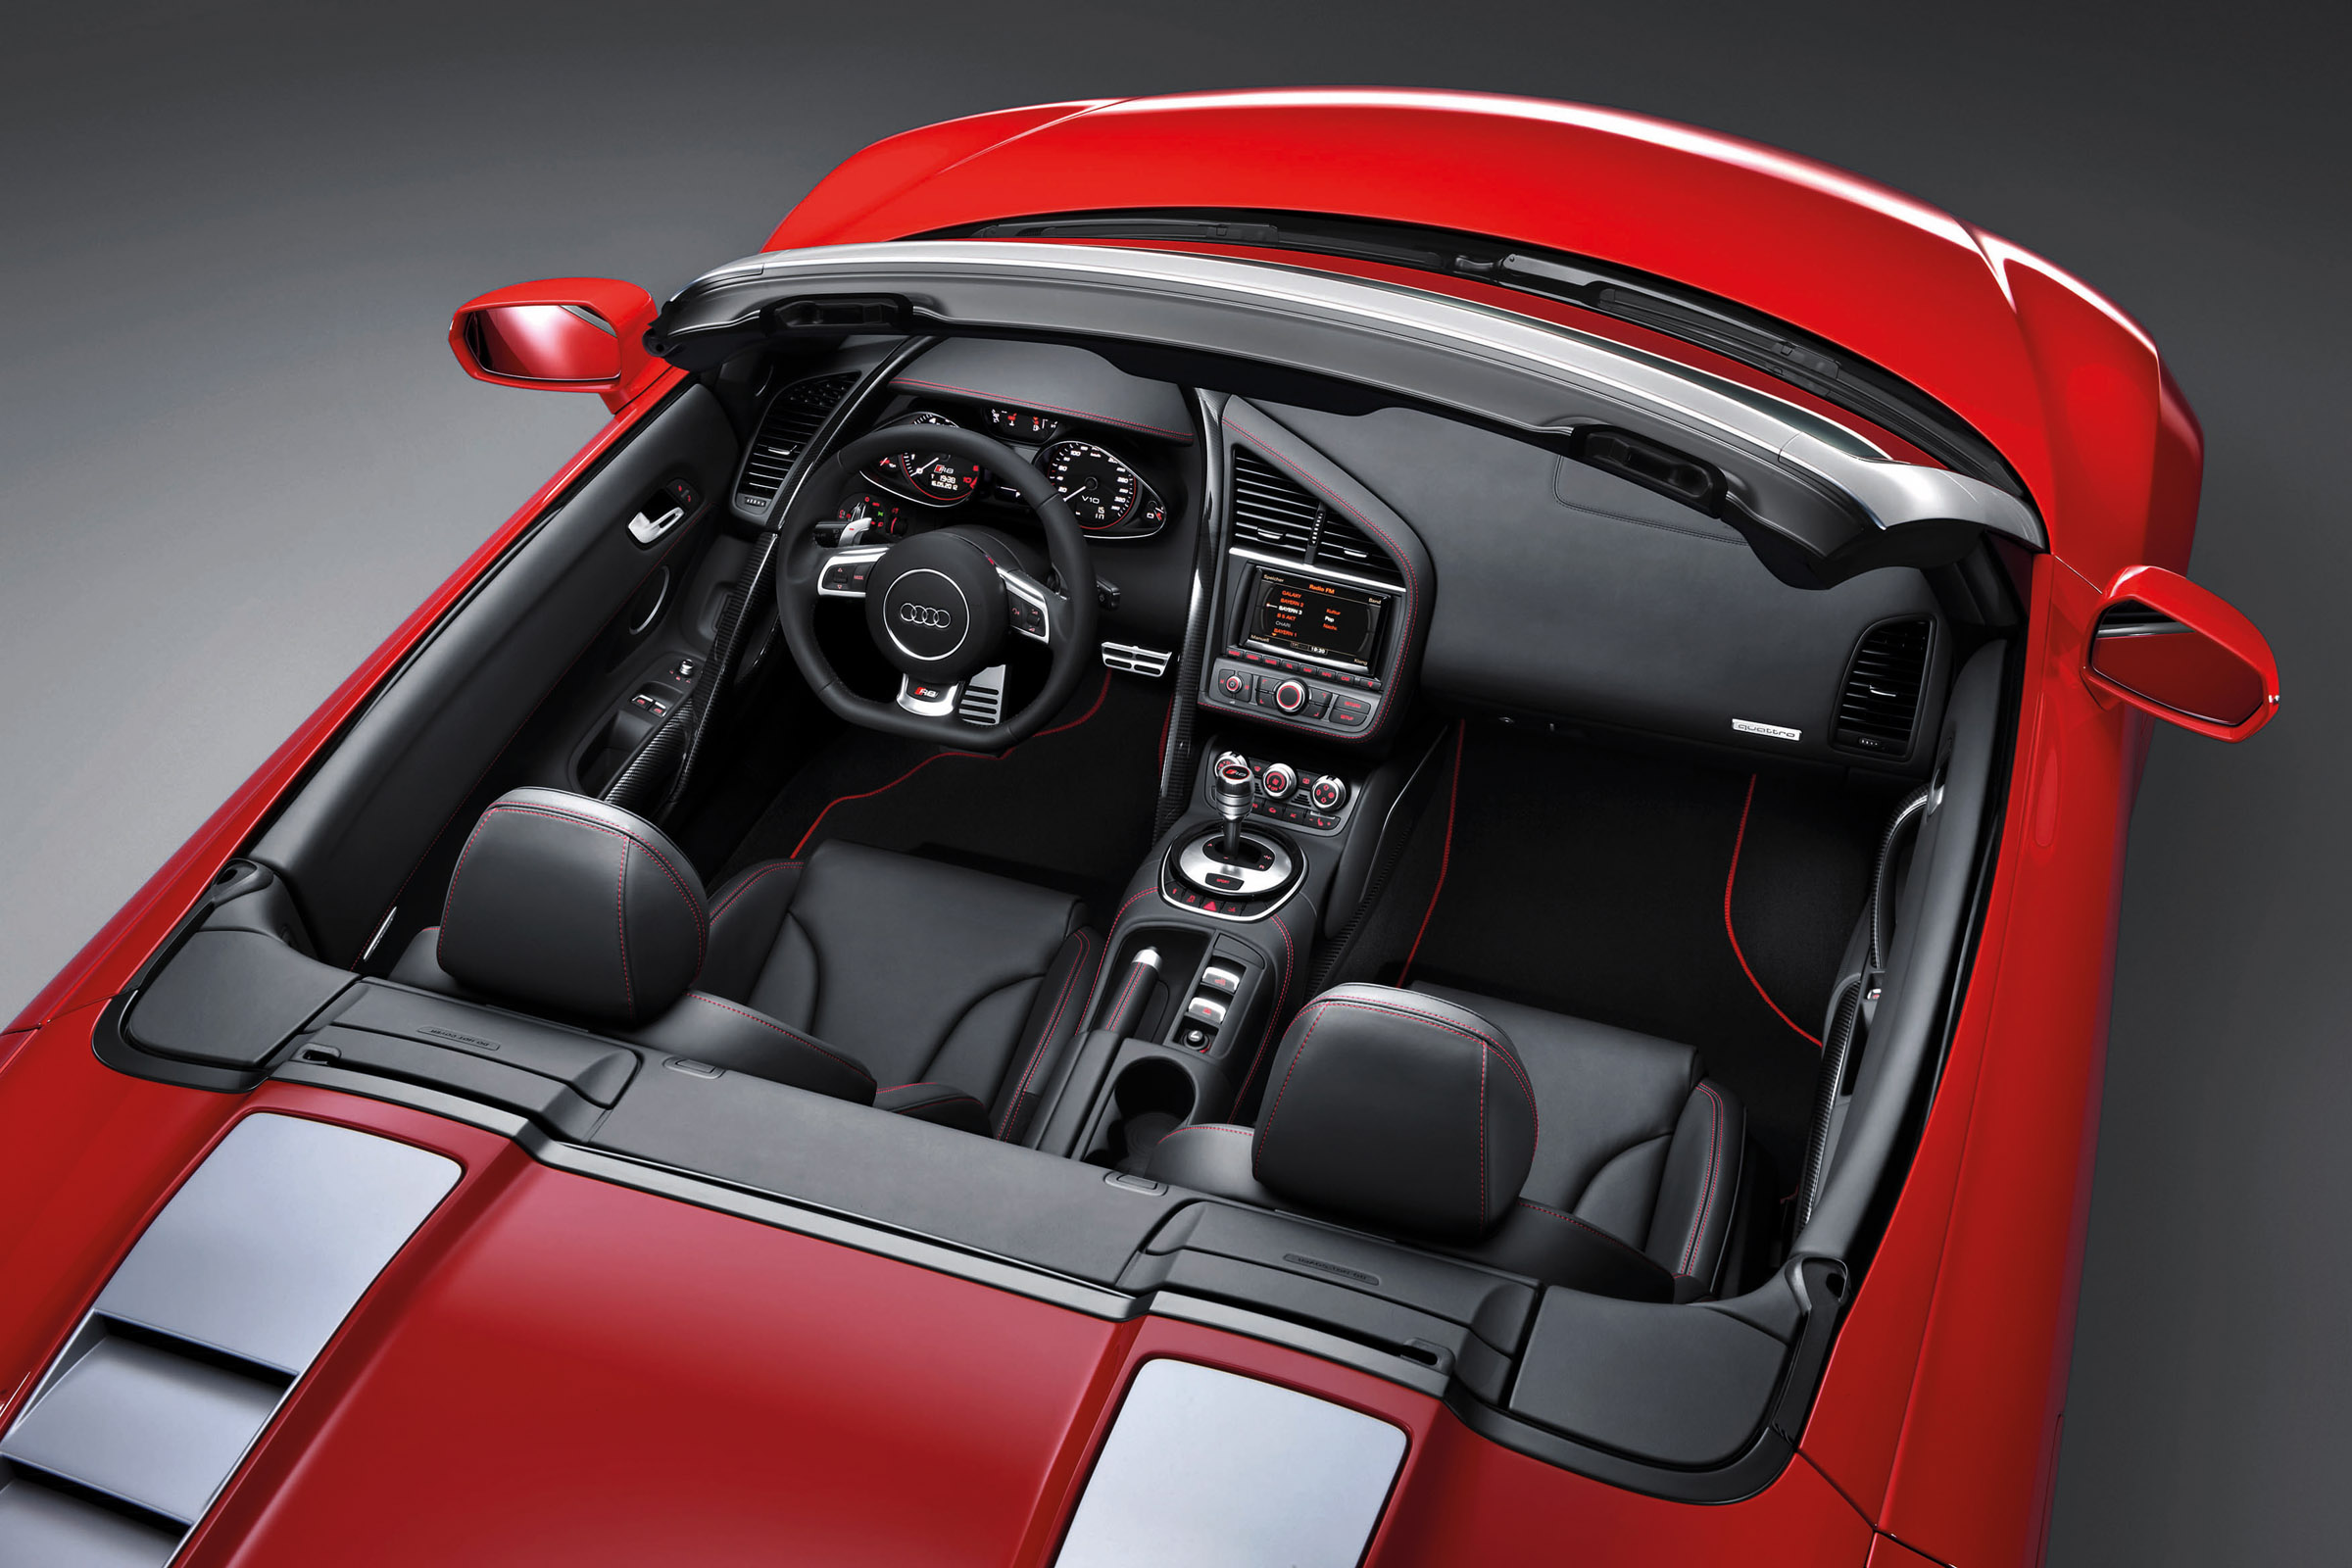 2013 Red Audi R8 Spyder V10 Top View